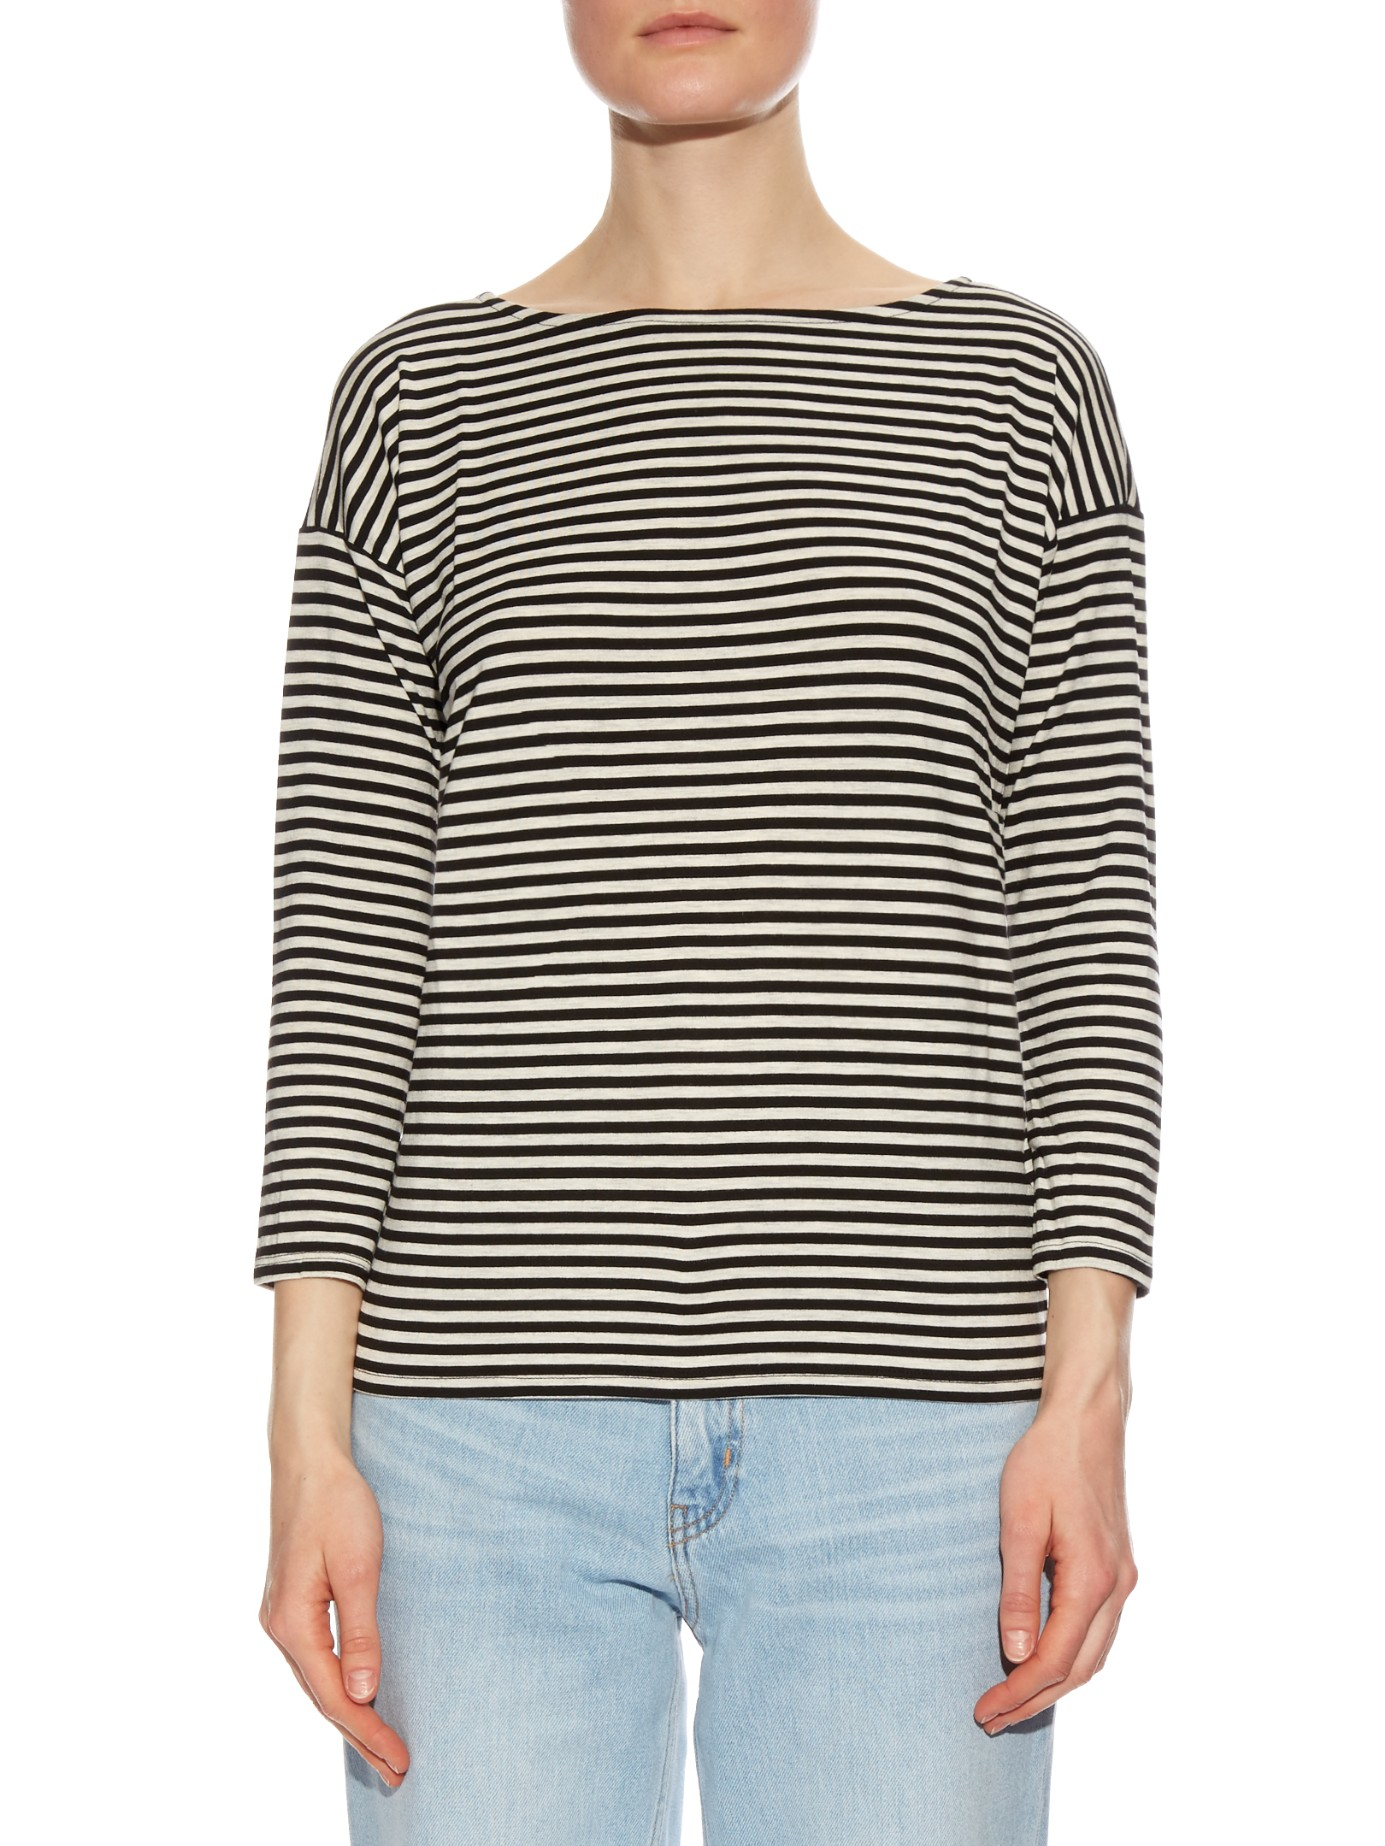 Free shipping and returns on Women's Boat Neck Tops at dexterminduwi.ga